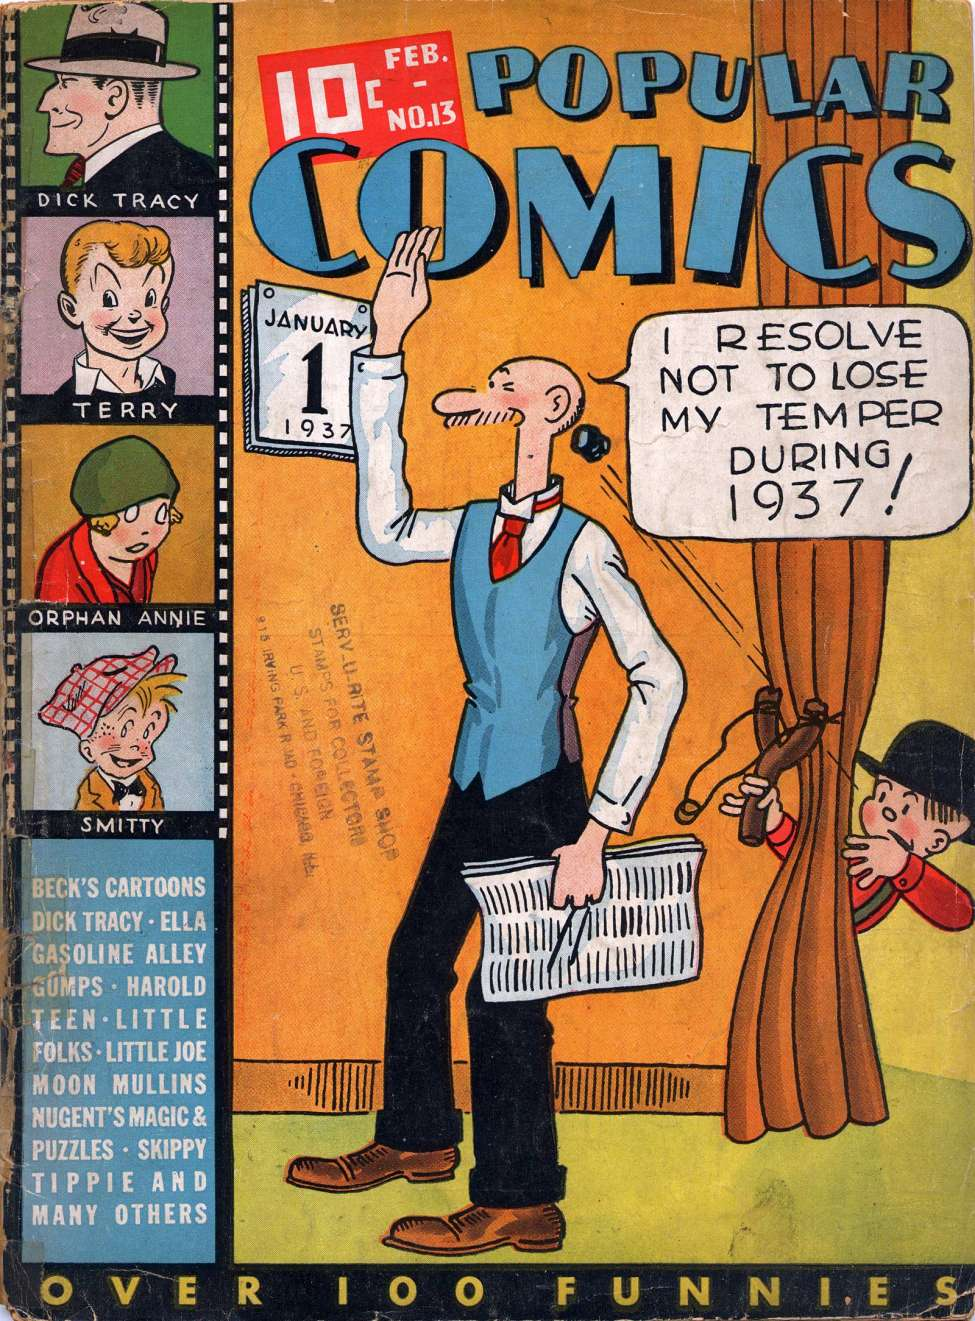 Comic Book Cover For Popular Comics #13